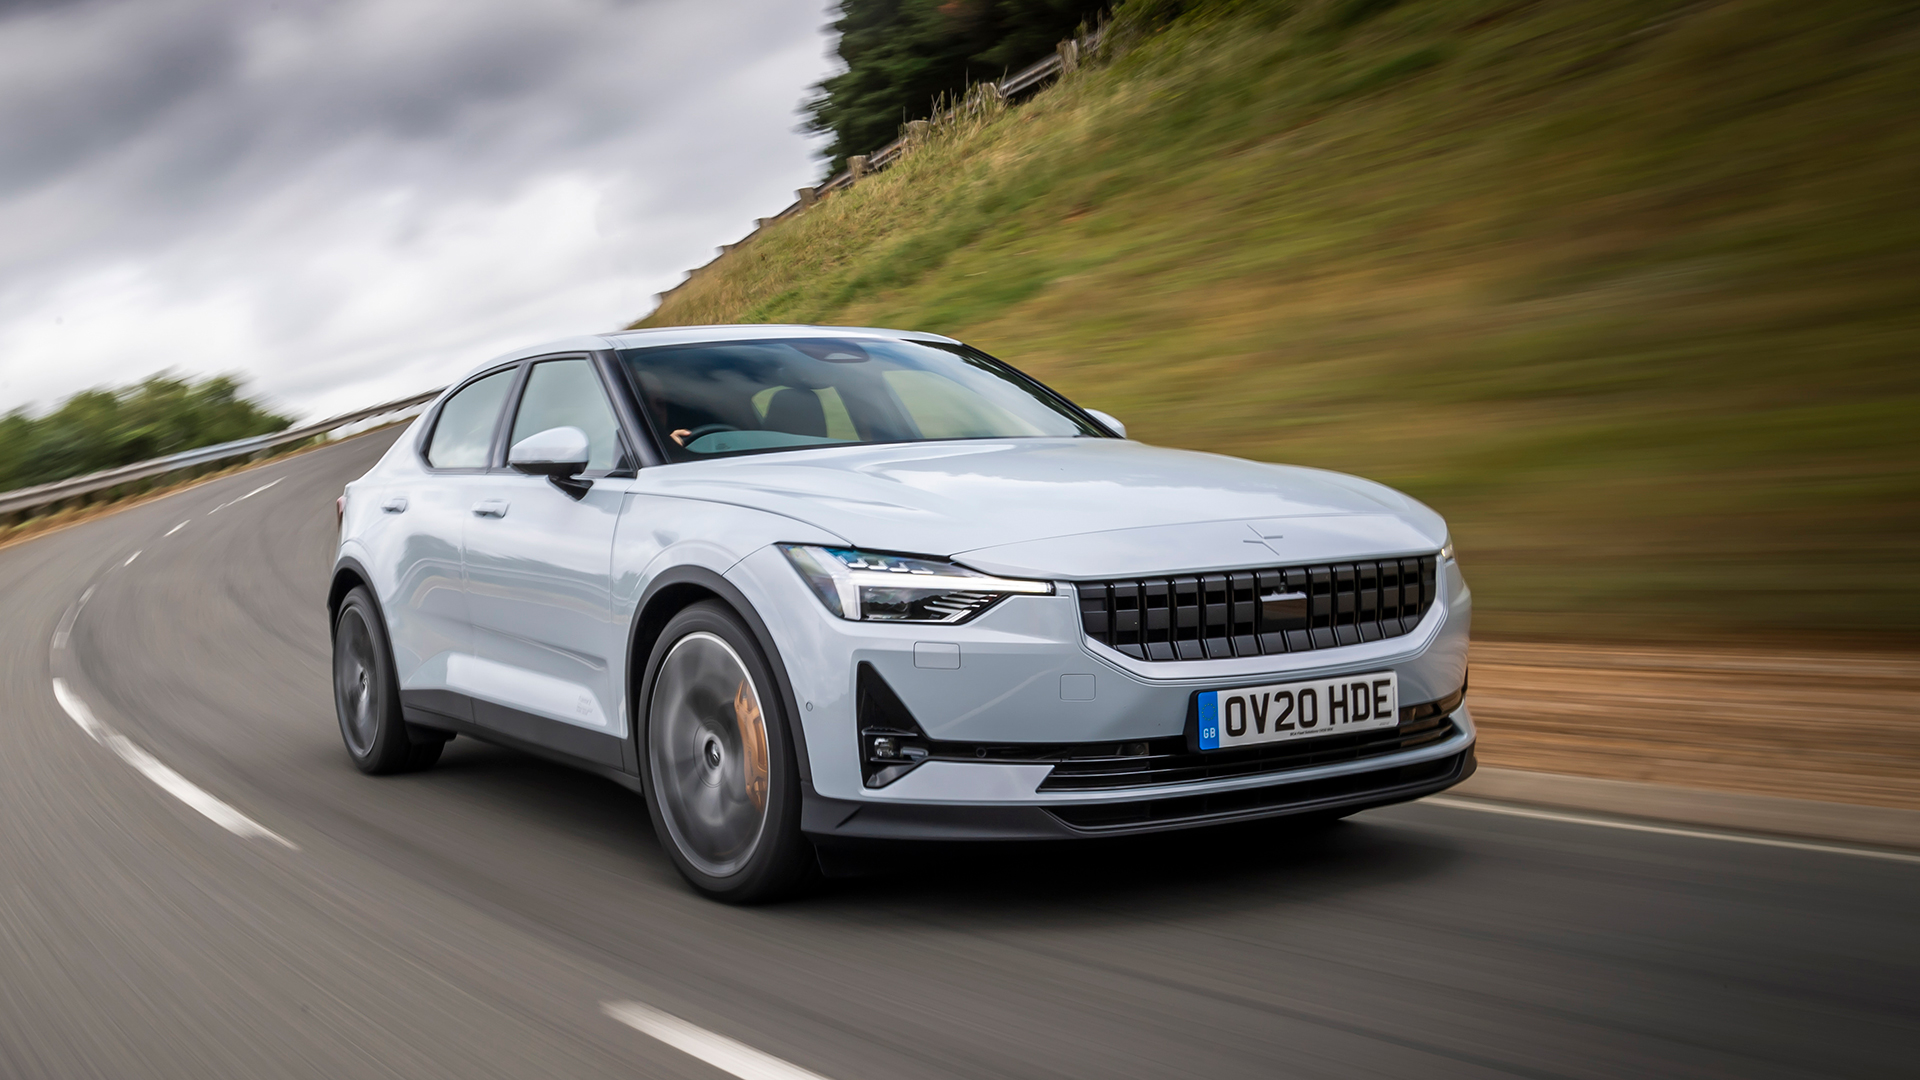 Electric car buying guide: 9 things you need to know